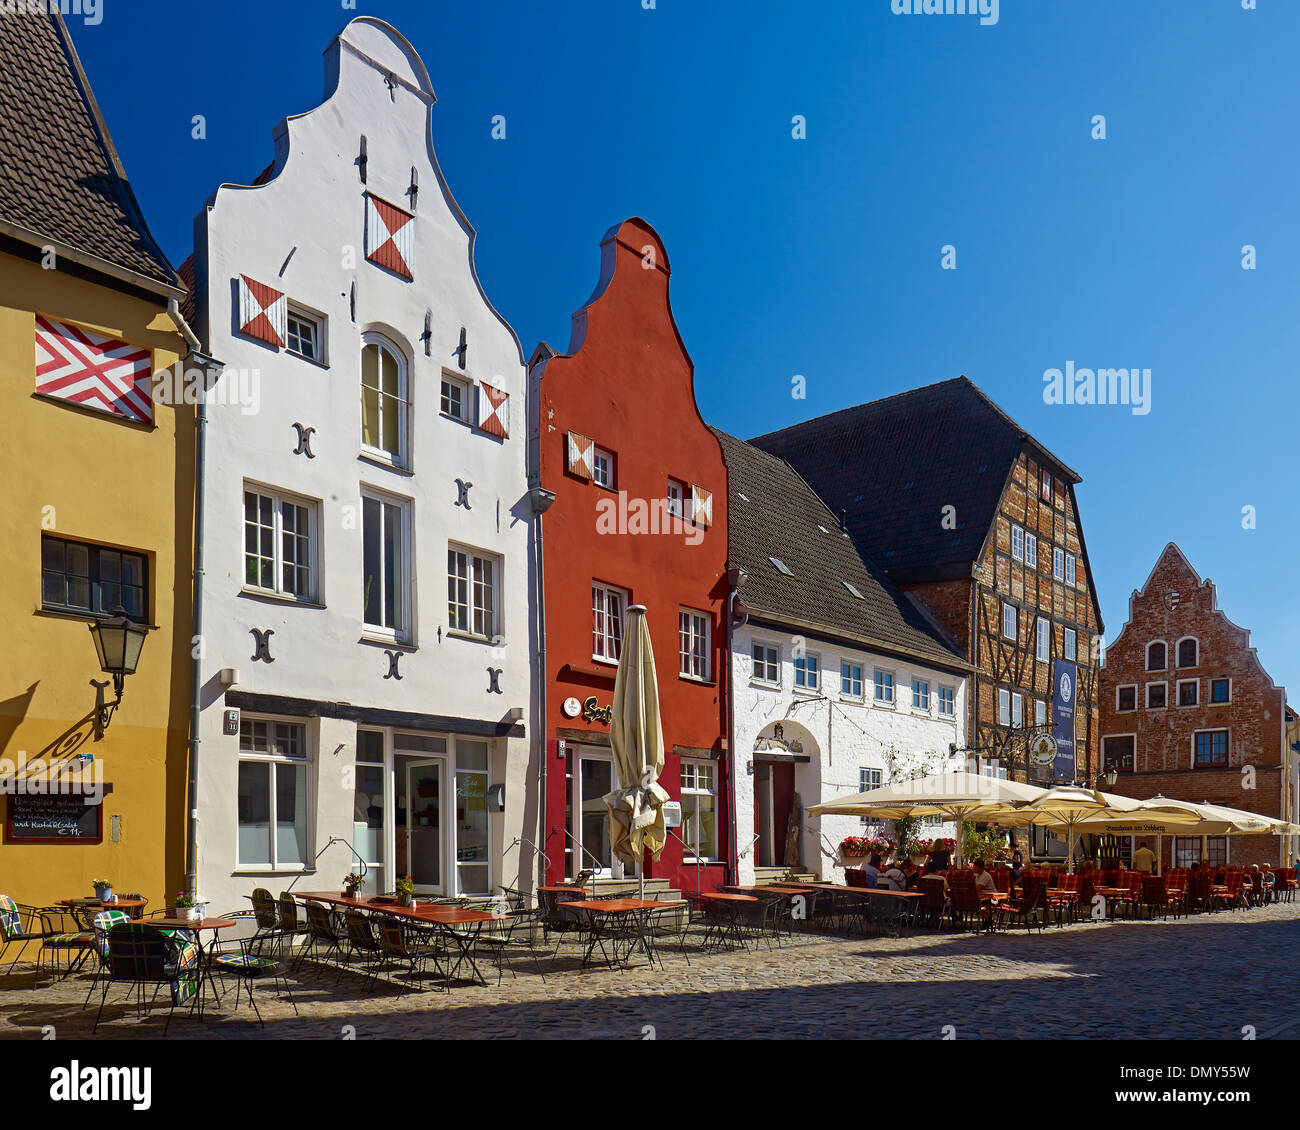 Houses with restaurants at the Lohberg, Hanseatic city of Wismar, Mecklenburg-Vorpommern, Germany Stock Photo